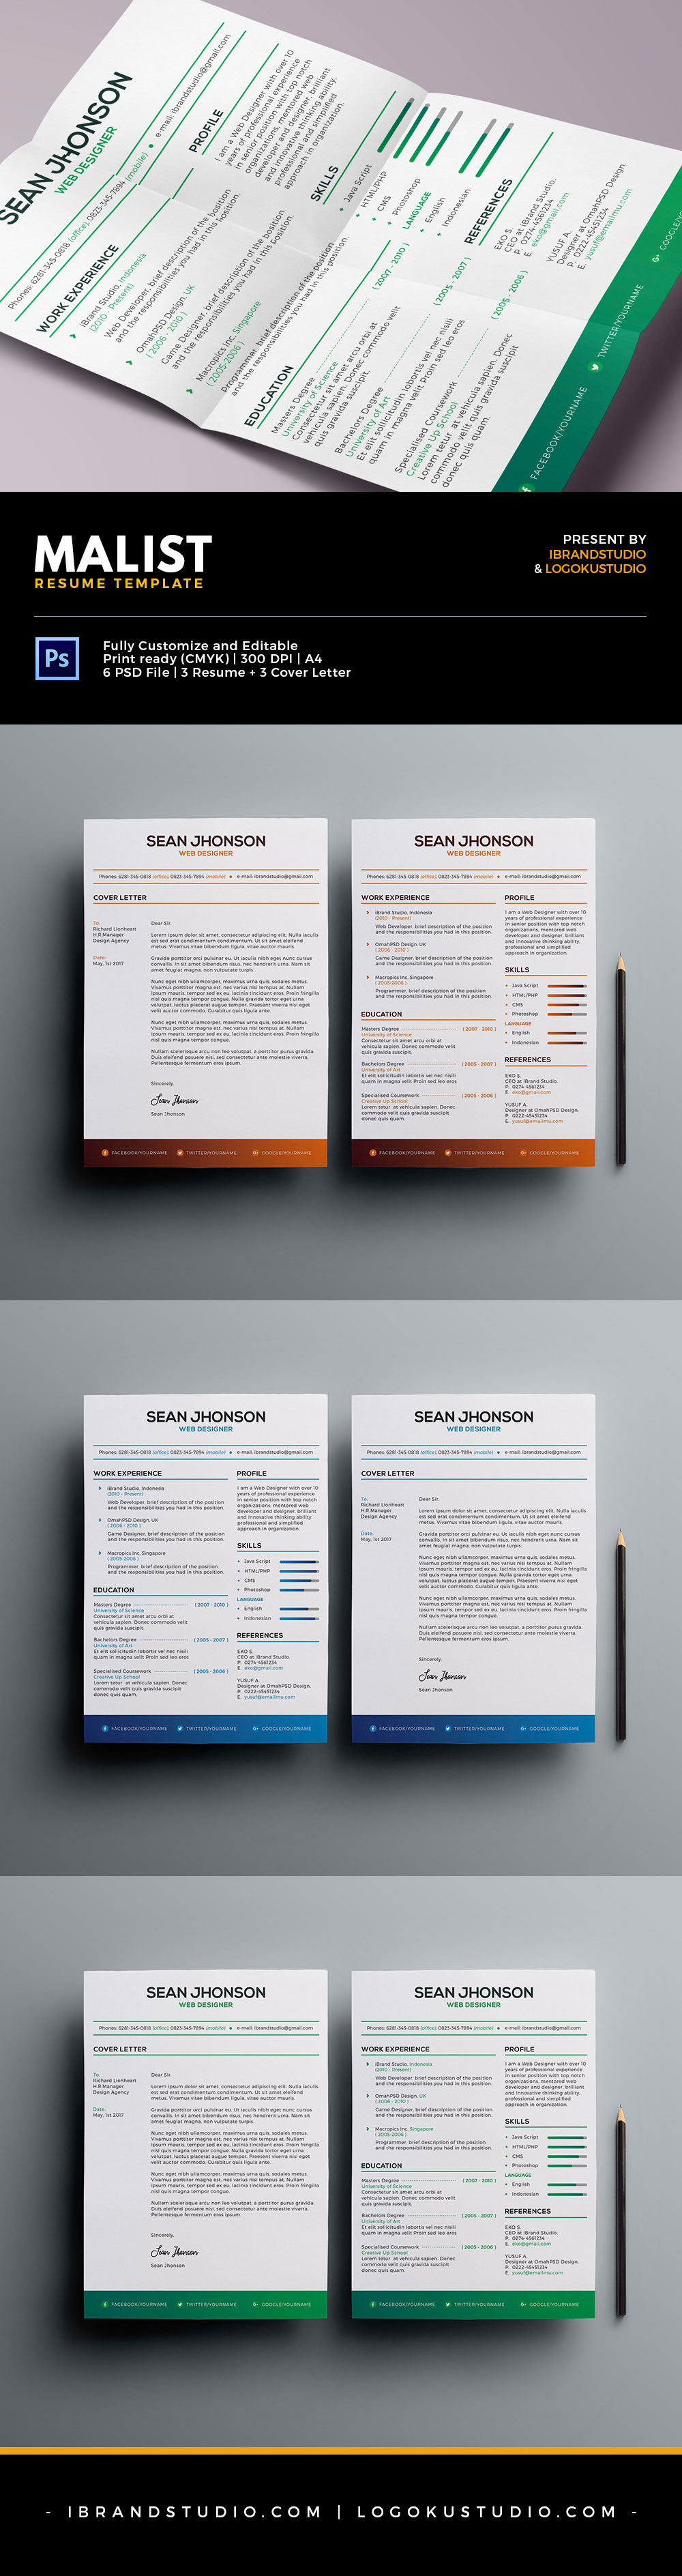 Free Malist Resume Template + Cover Letter (PSD)